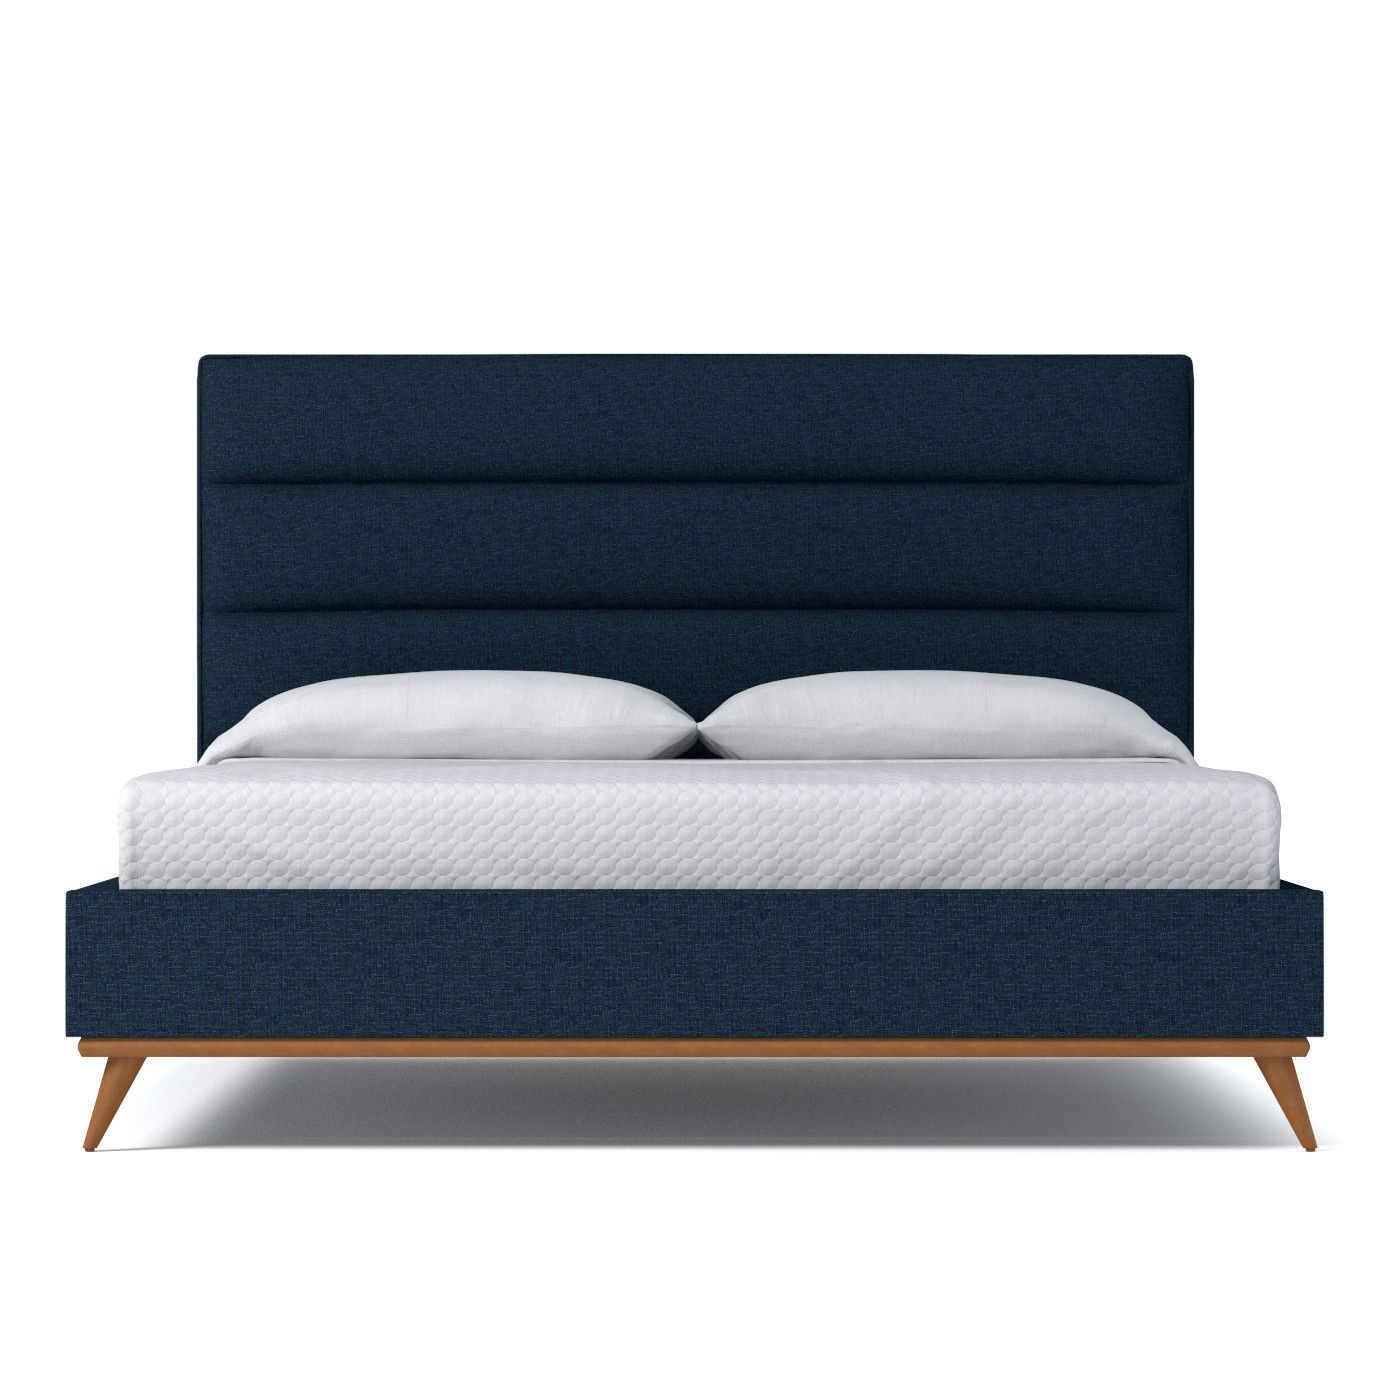 Cooper Upholstered Bed | Camas